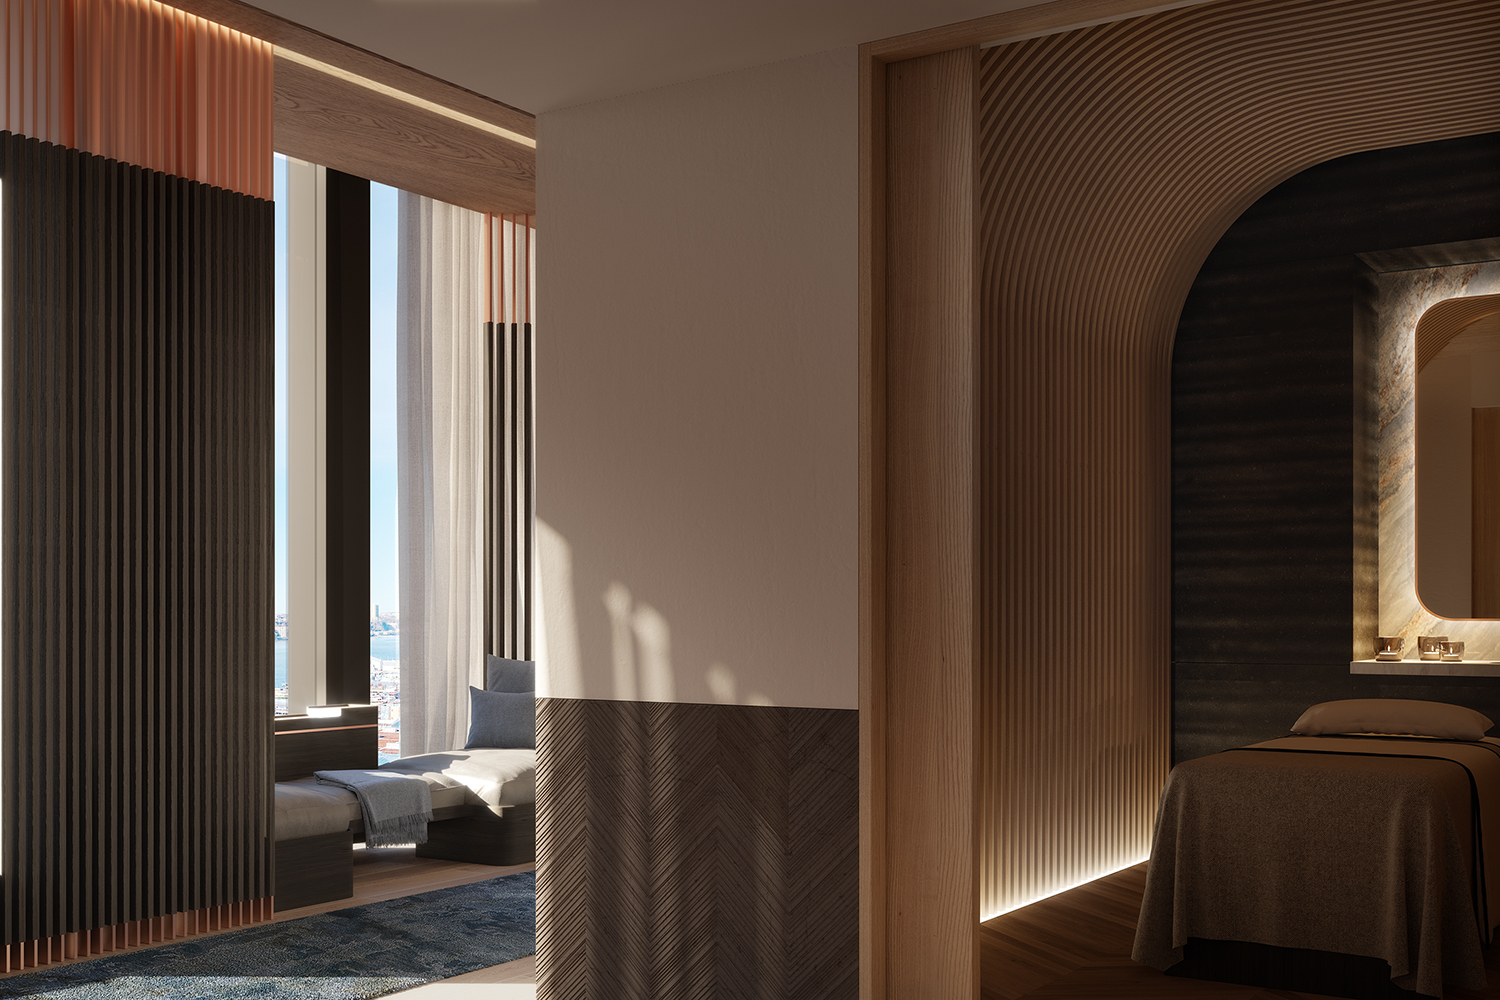 35 HUDSON YARDS, 5305, Master Bedroom Suite